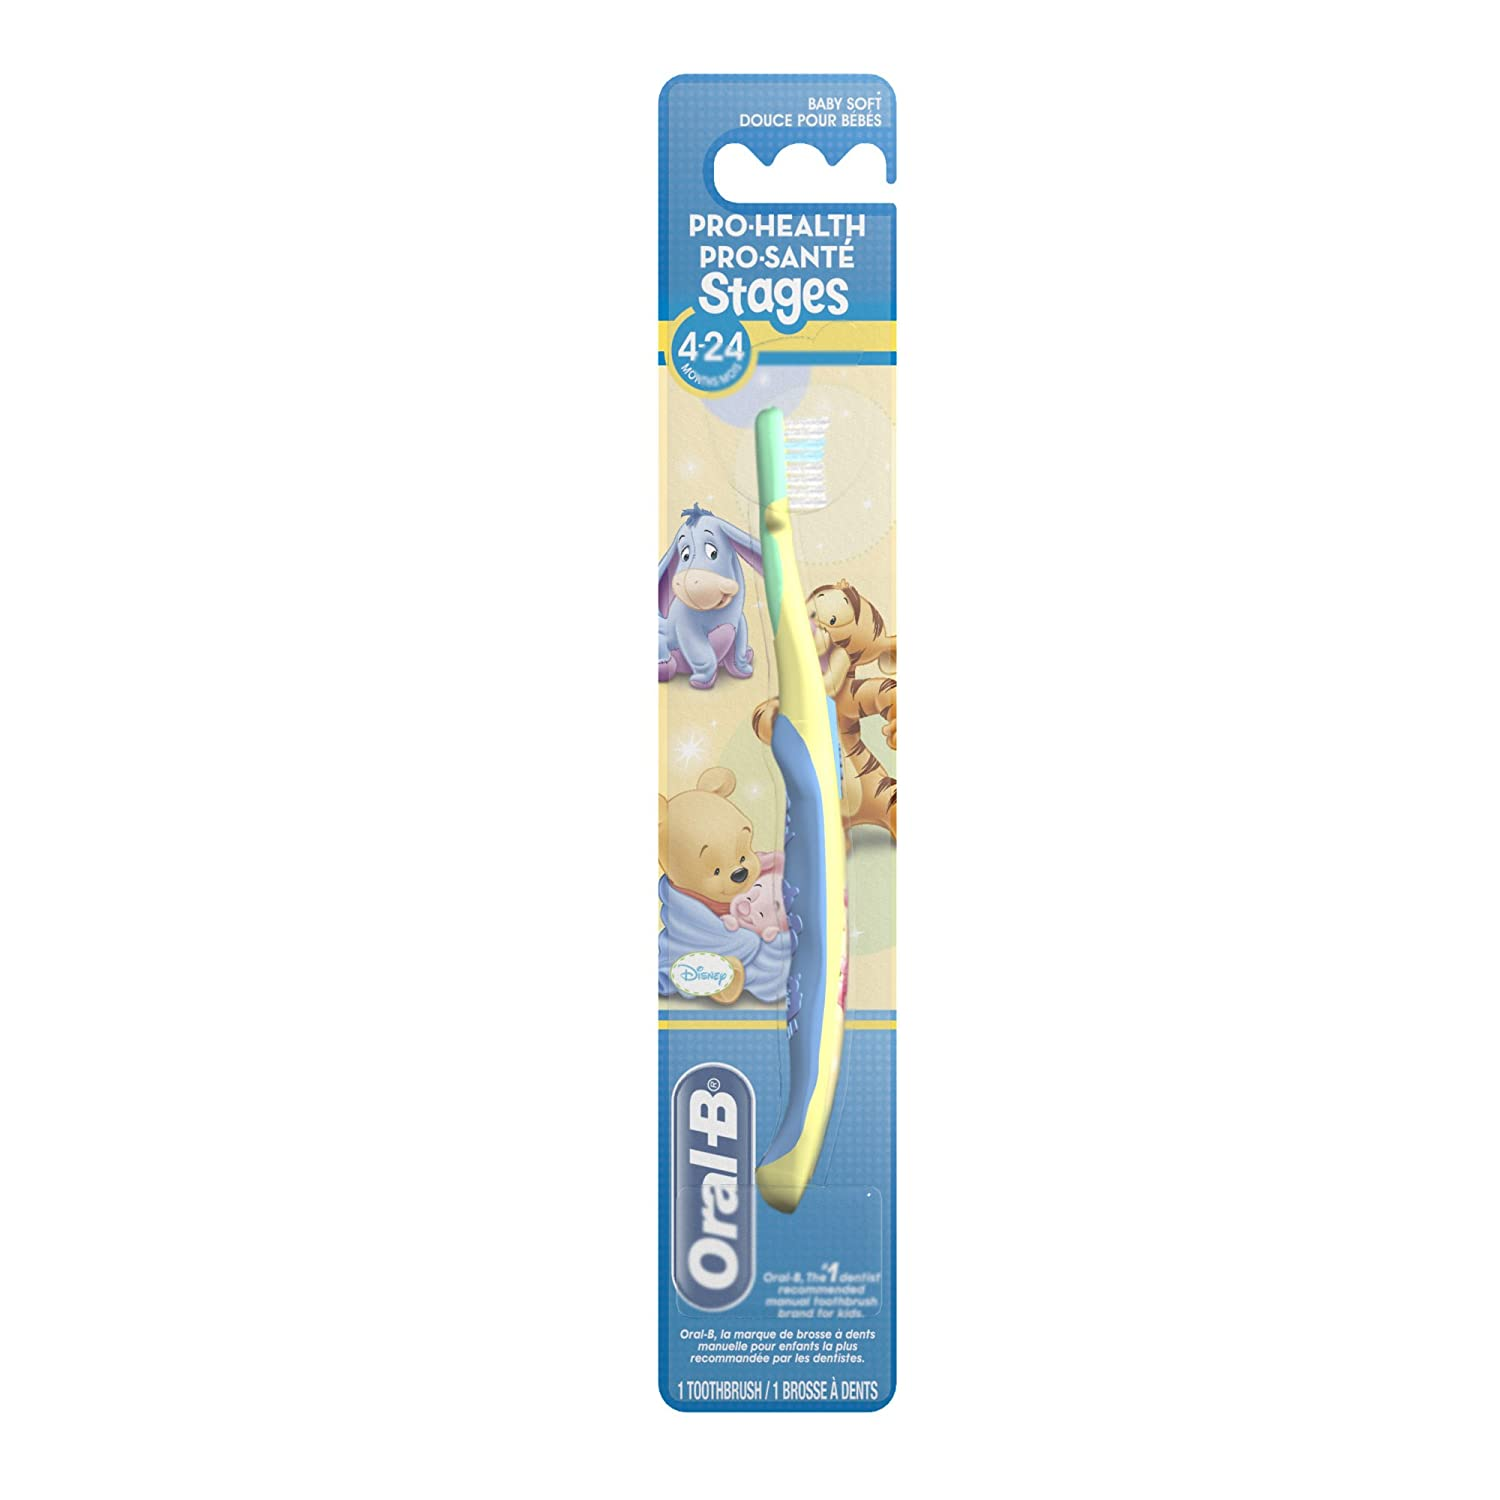 Oral-B Pro-Health Stages 4-24 Months Baby Soft Bristles Disney Toothbrush 1 Count, packaging may vary Oral B